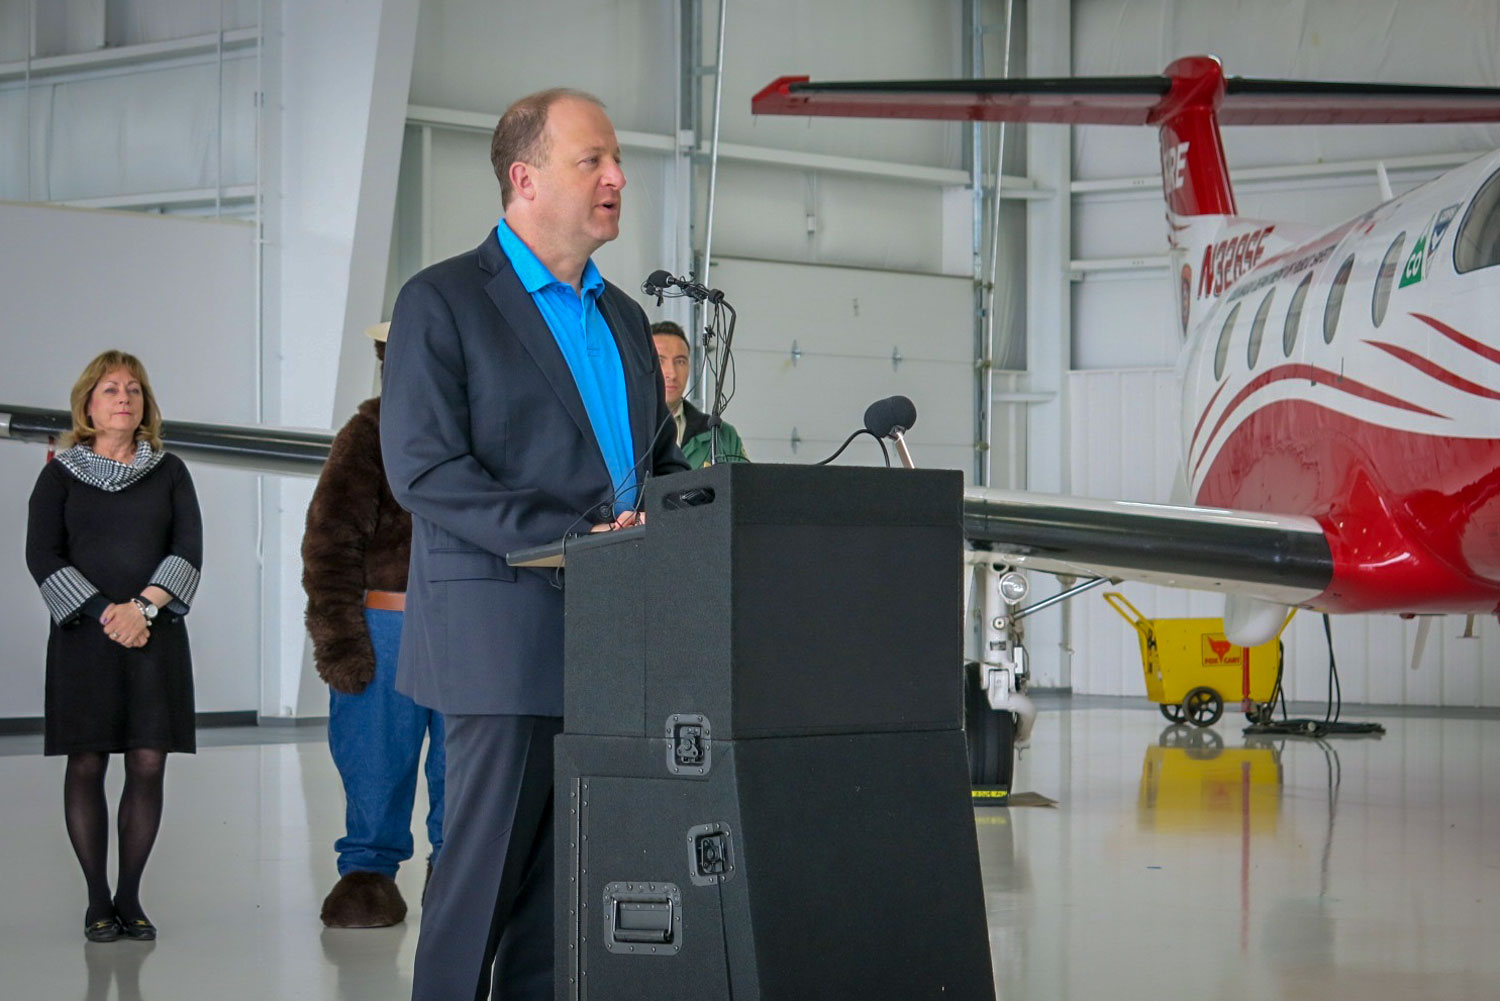 <p>Despite a below-average projected wildfire season, Gov. Jared Polis urged homeowners to take action to protect their properties against fire risk, May 7, 2019</p>